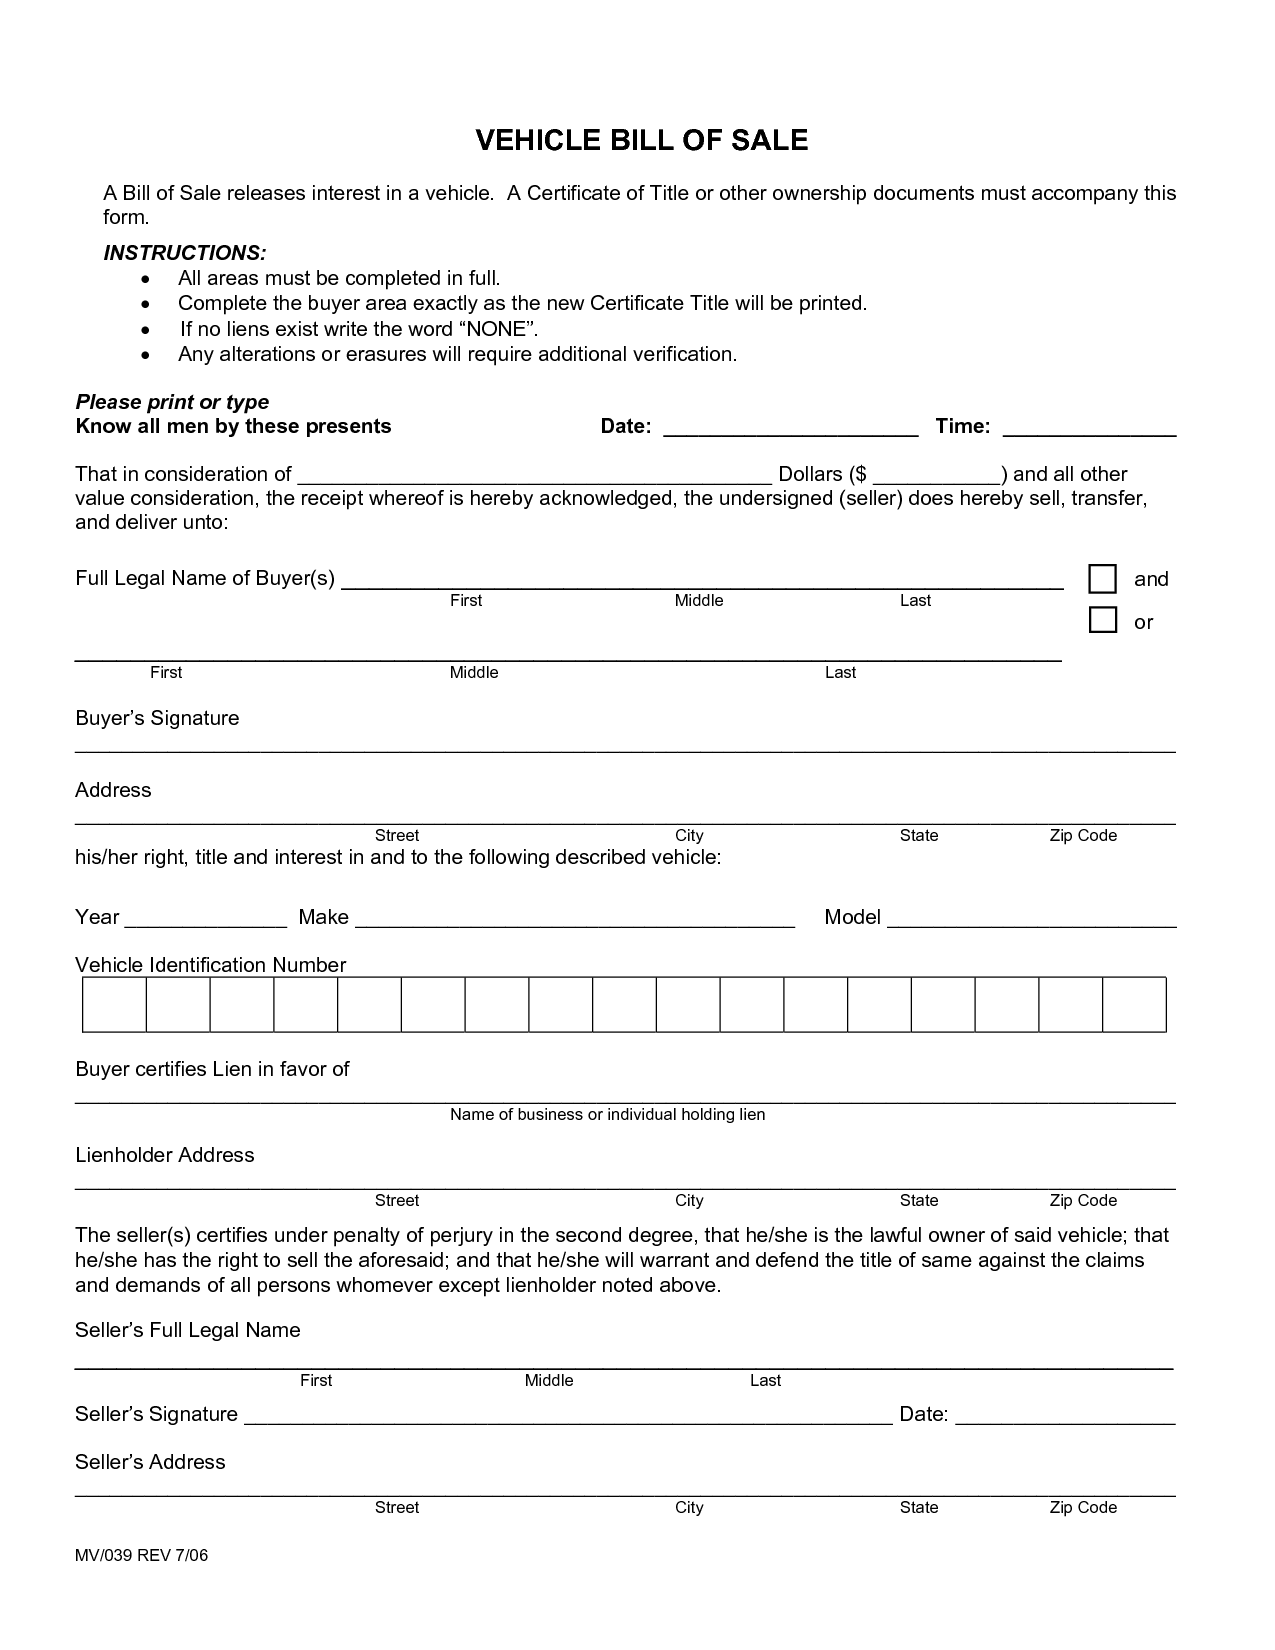 Crush image pertaining to bill of sale form printable